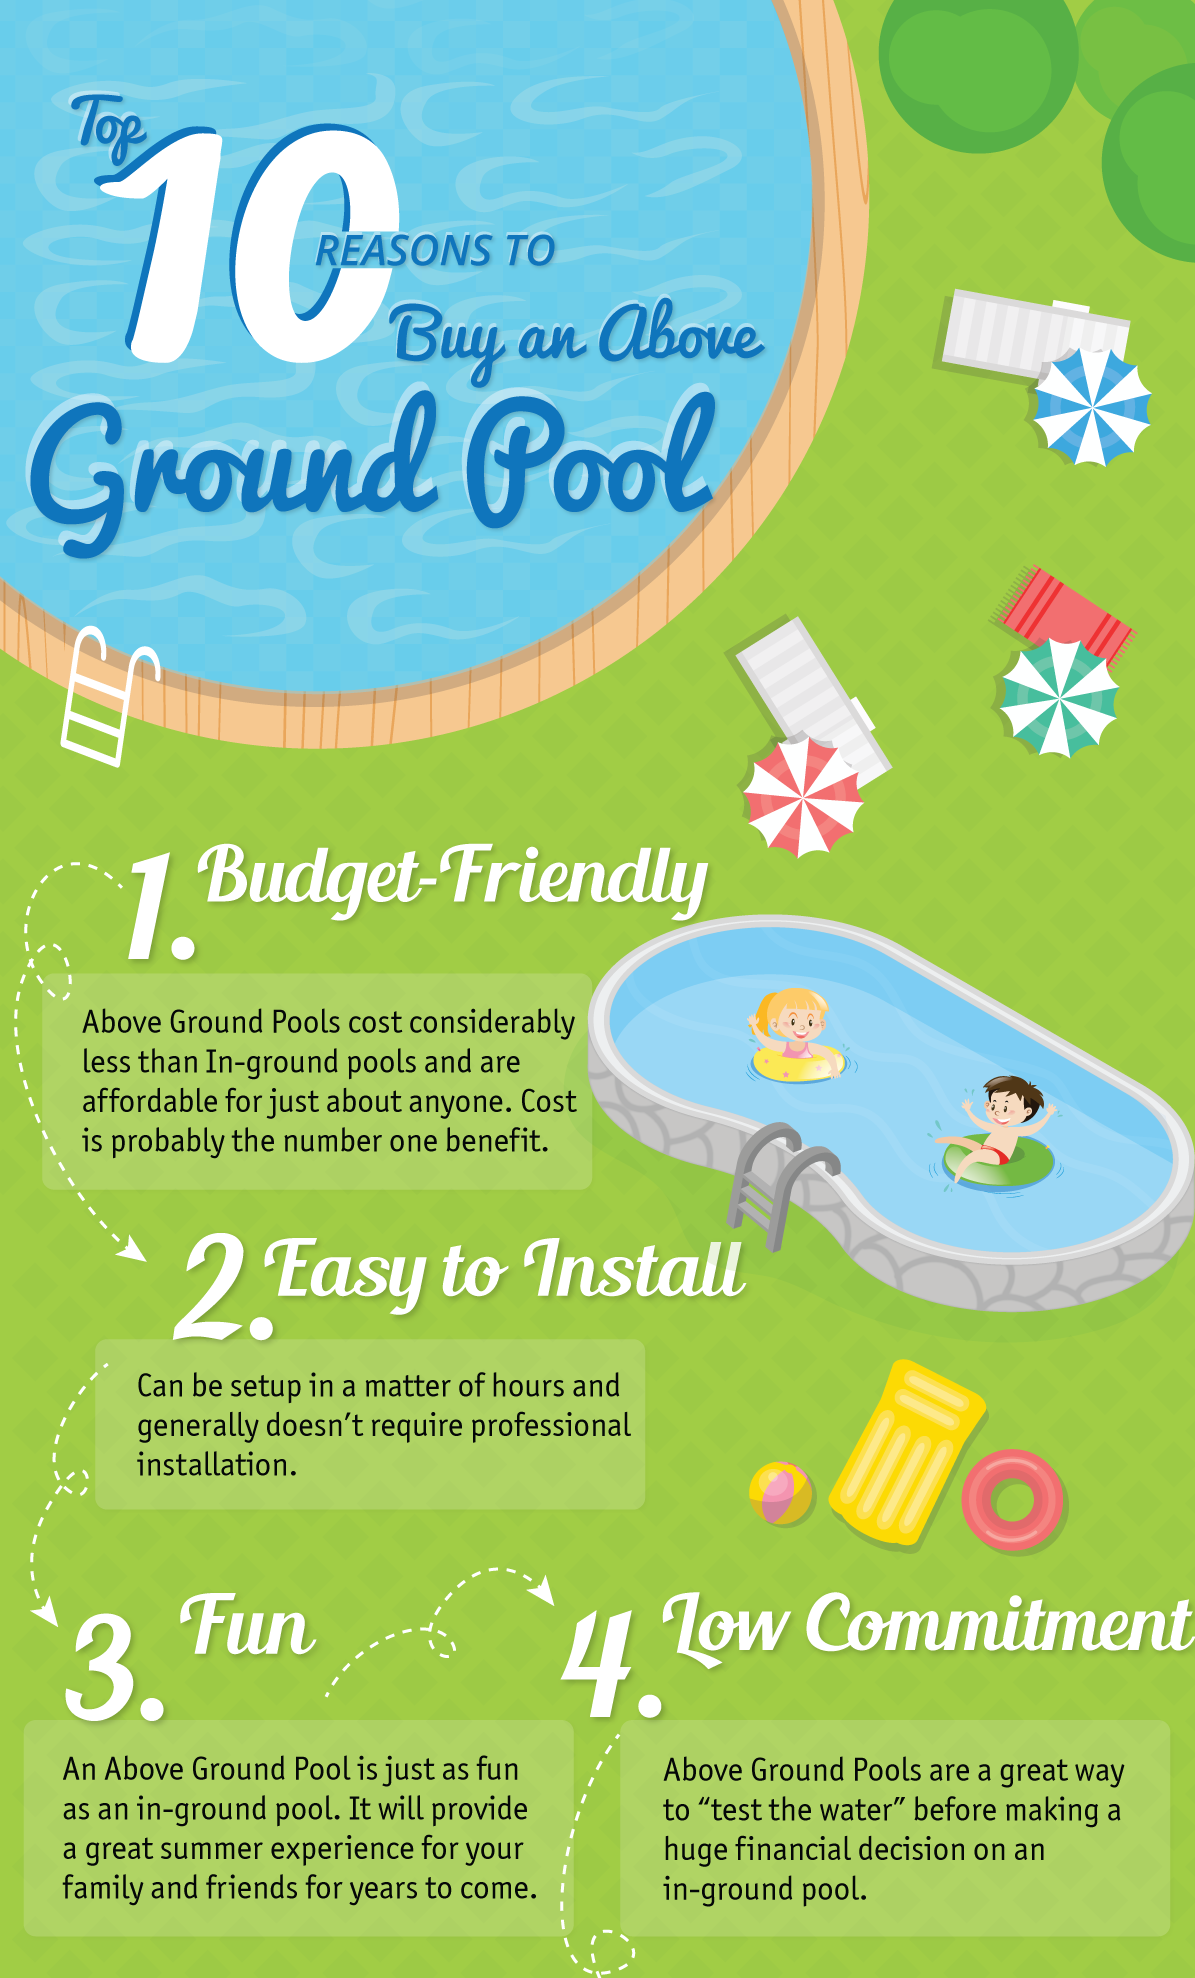 Top 10 Reasons To Buy An Above Ground Pool Infographic